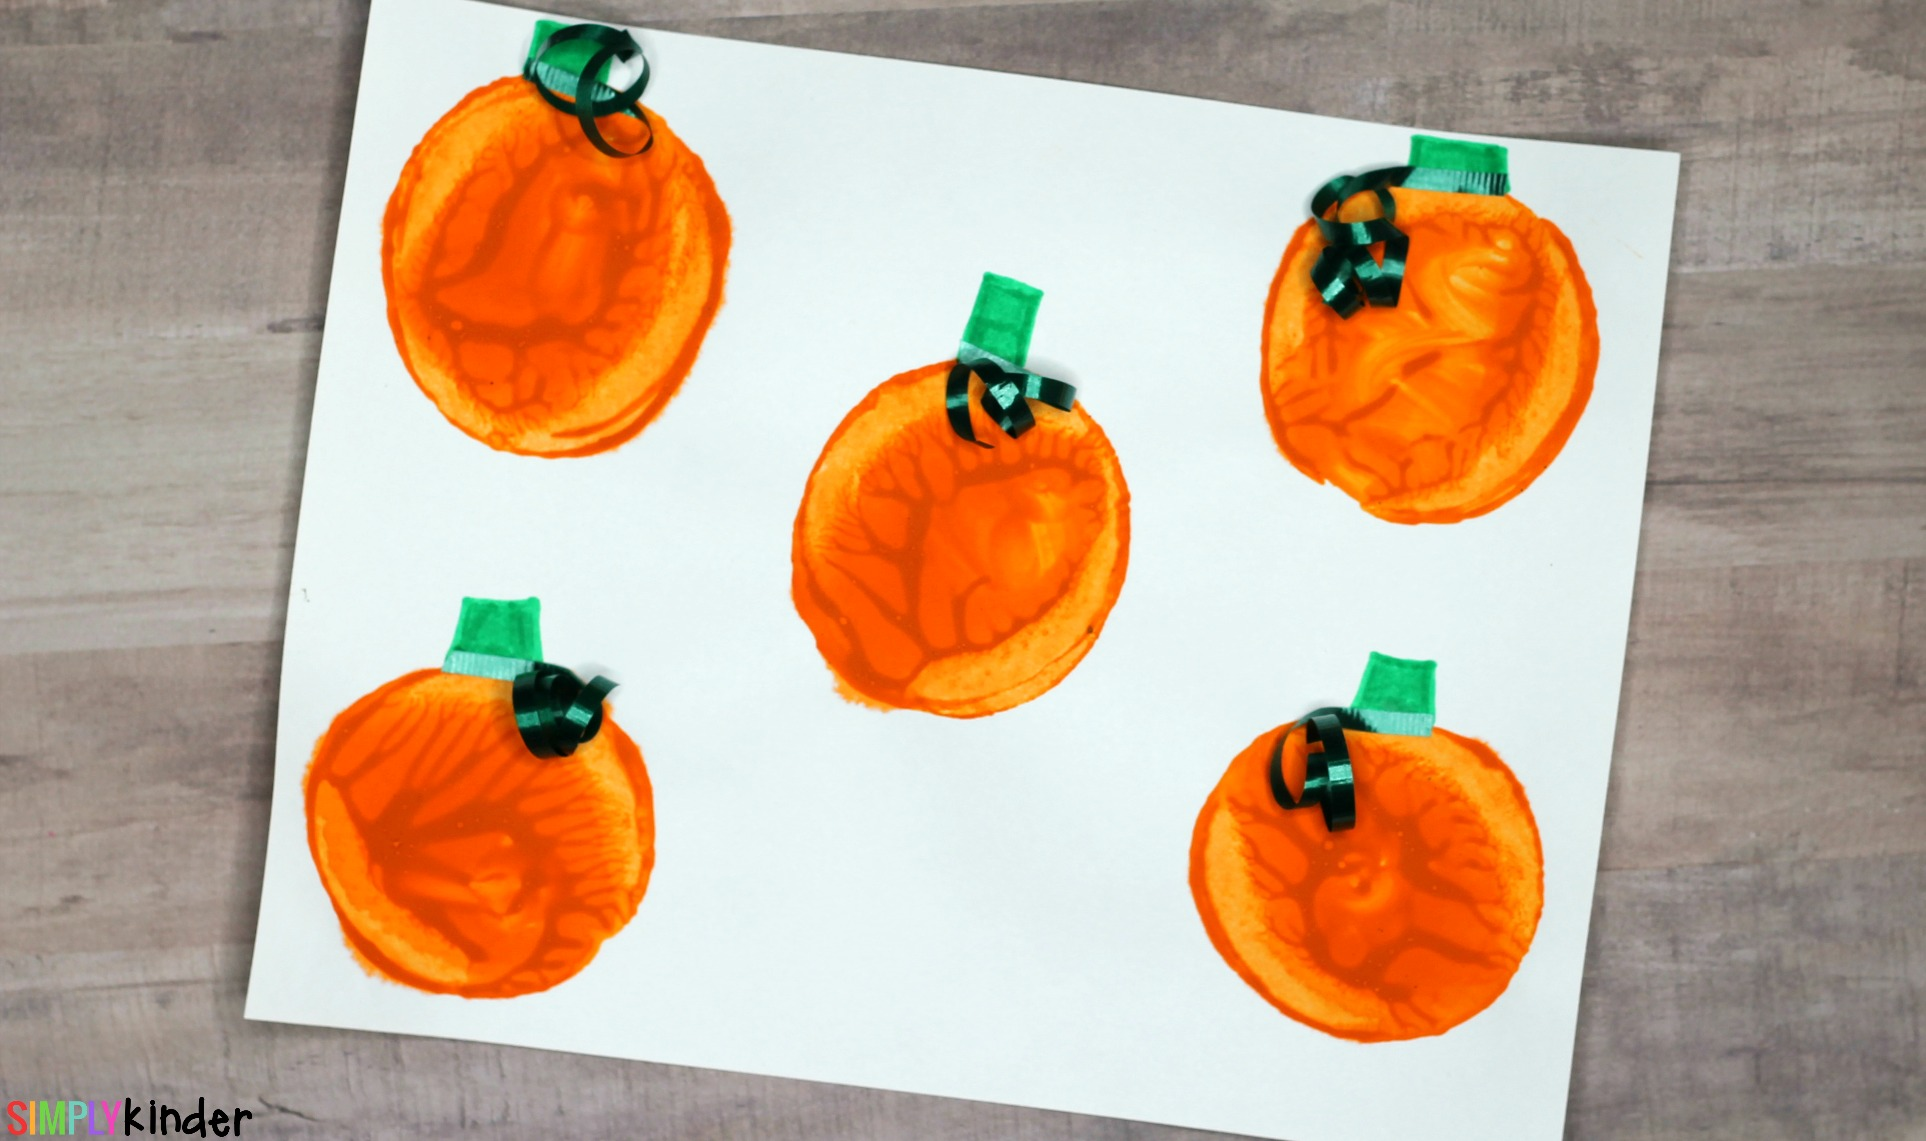 Potato Stamped Pumpkin Patch Process Art Craft